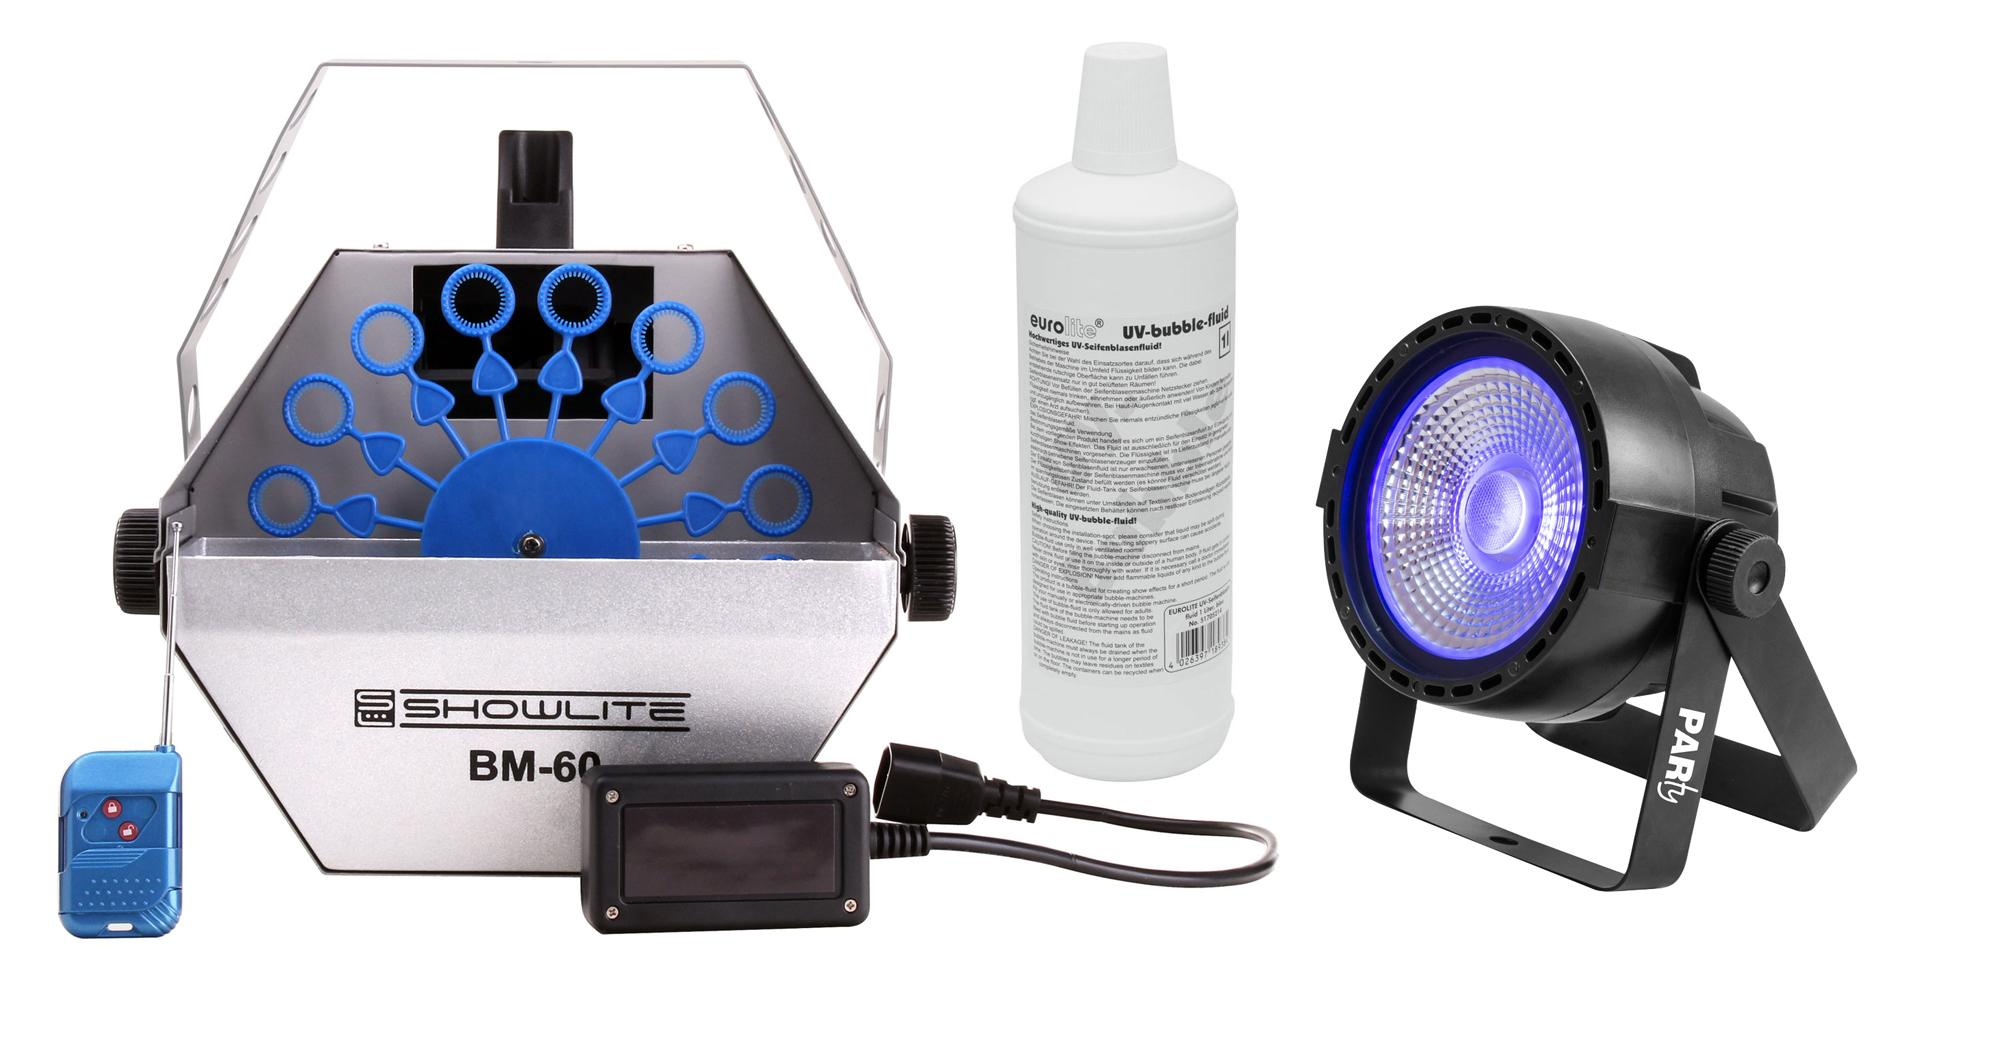 Showlite BM 60 UV Seifenblasen Set Blau